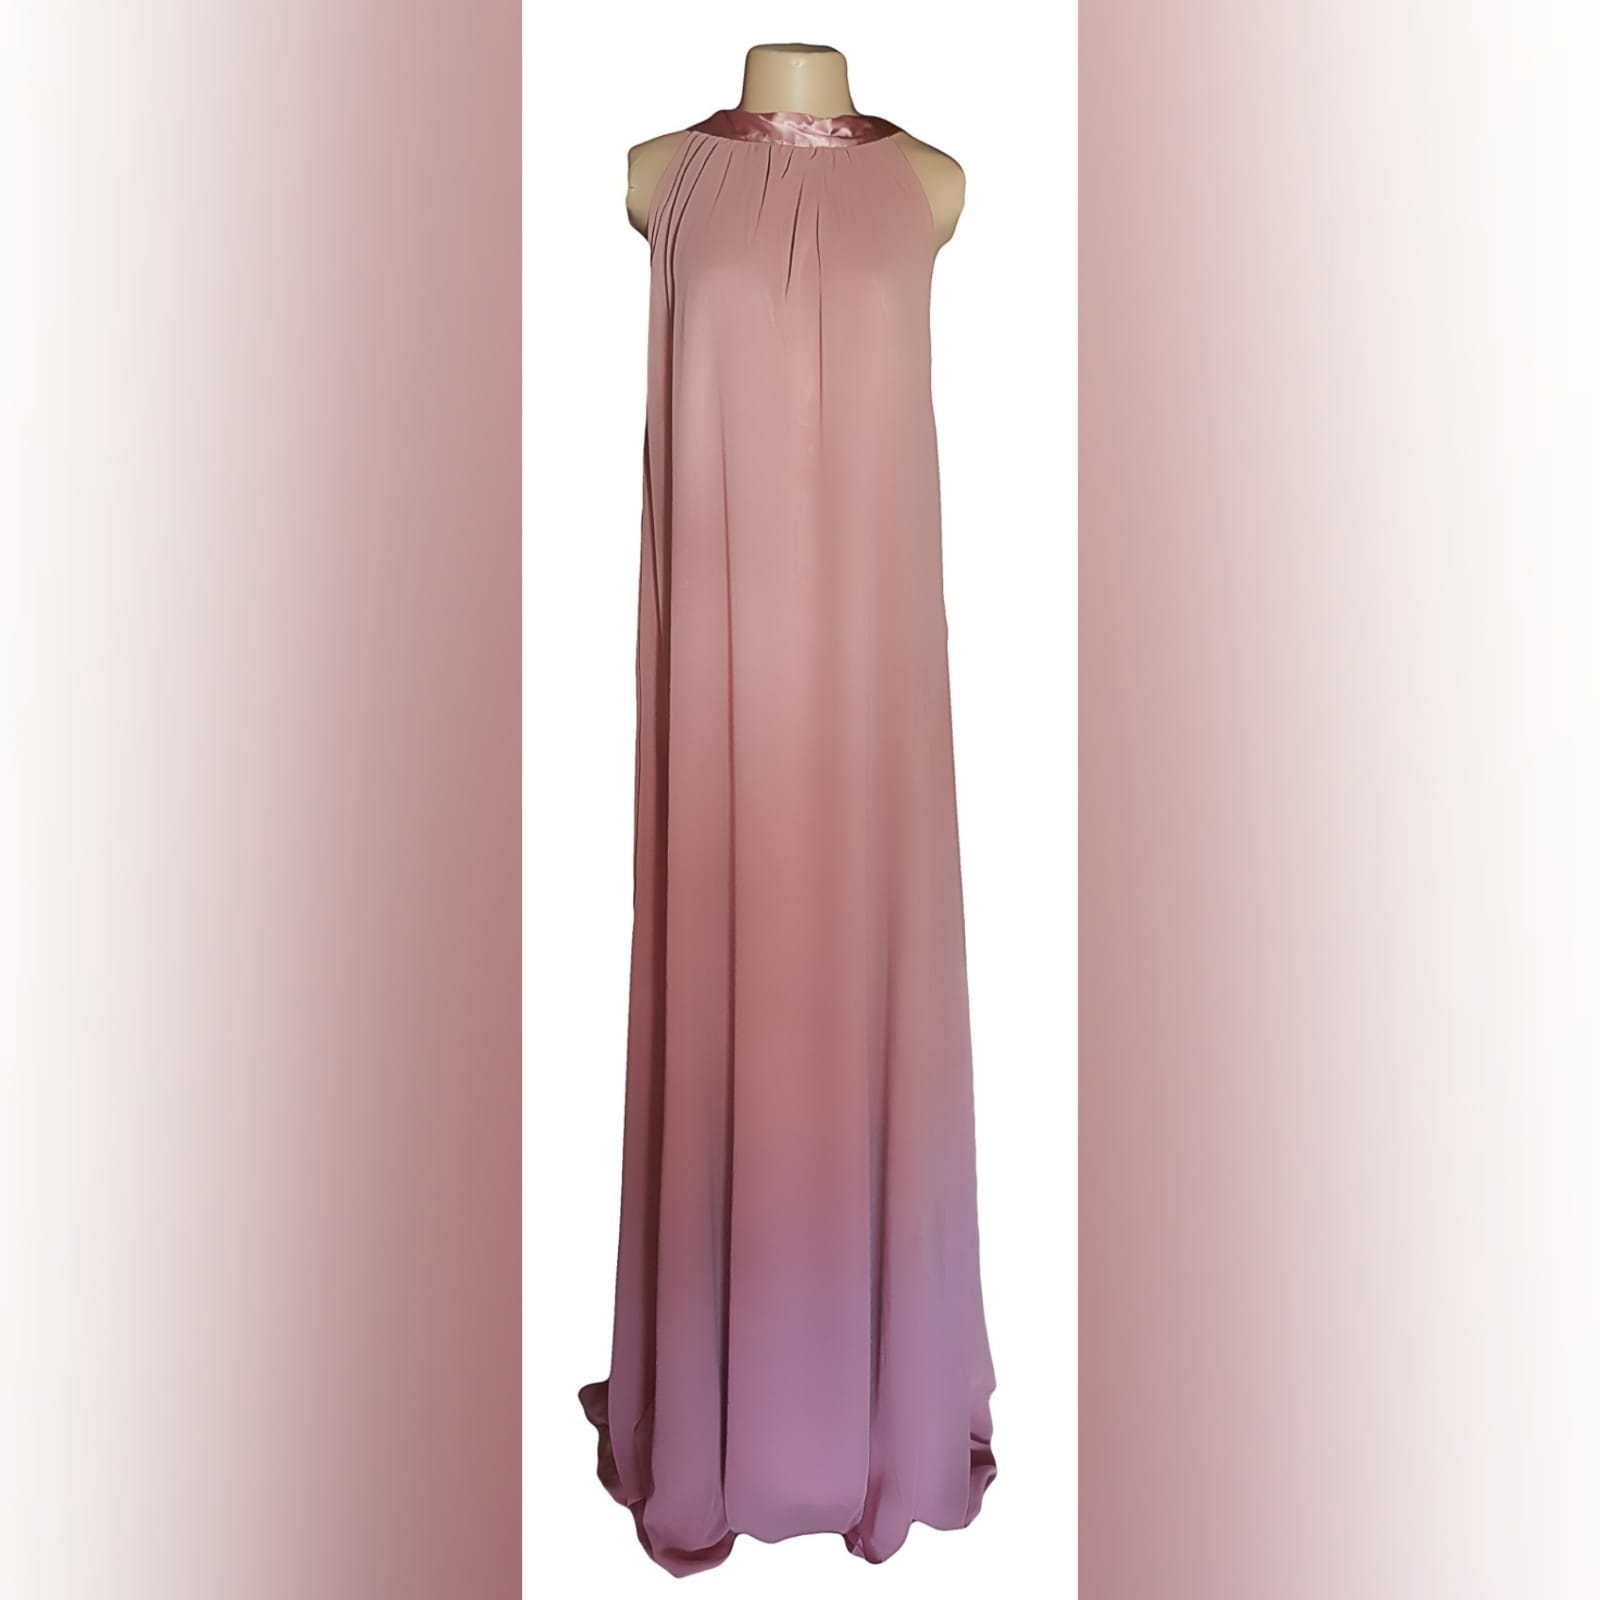 Long pink chiffon ceremony dress created for a wedding 8 long pink chiffon ceremony dress created for a wedding, a client in south africa. A long flowy dress with a satin ribbon on the back neckline. With a matching lipstick bag